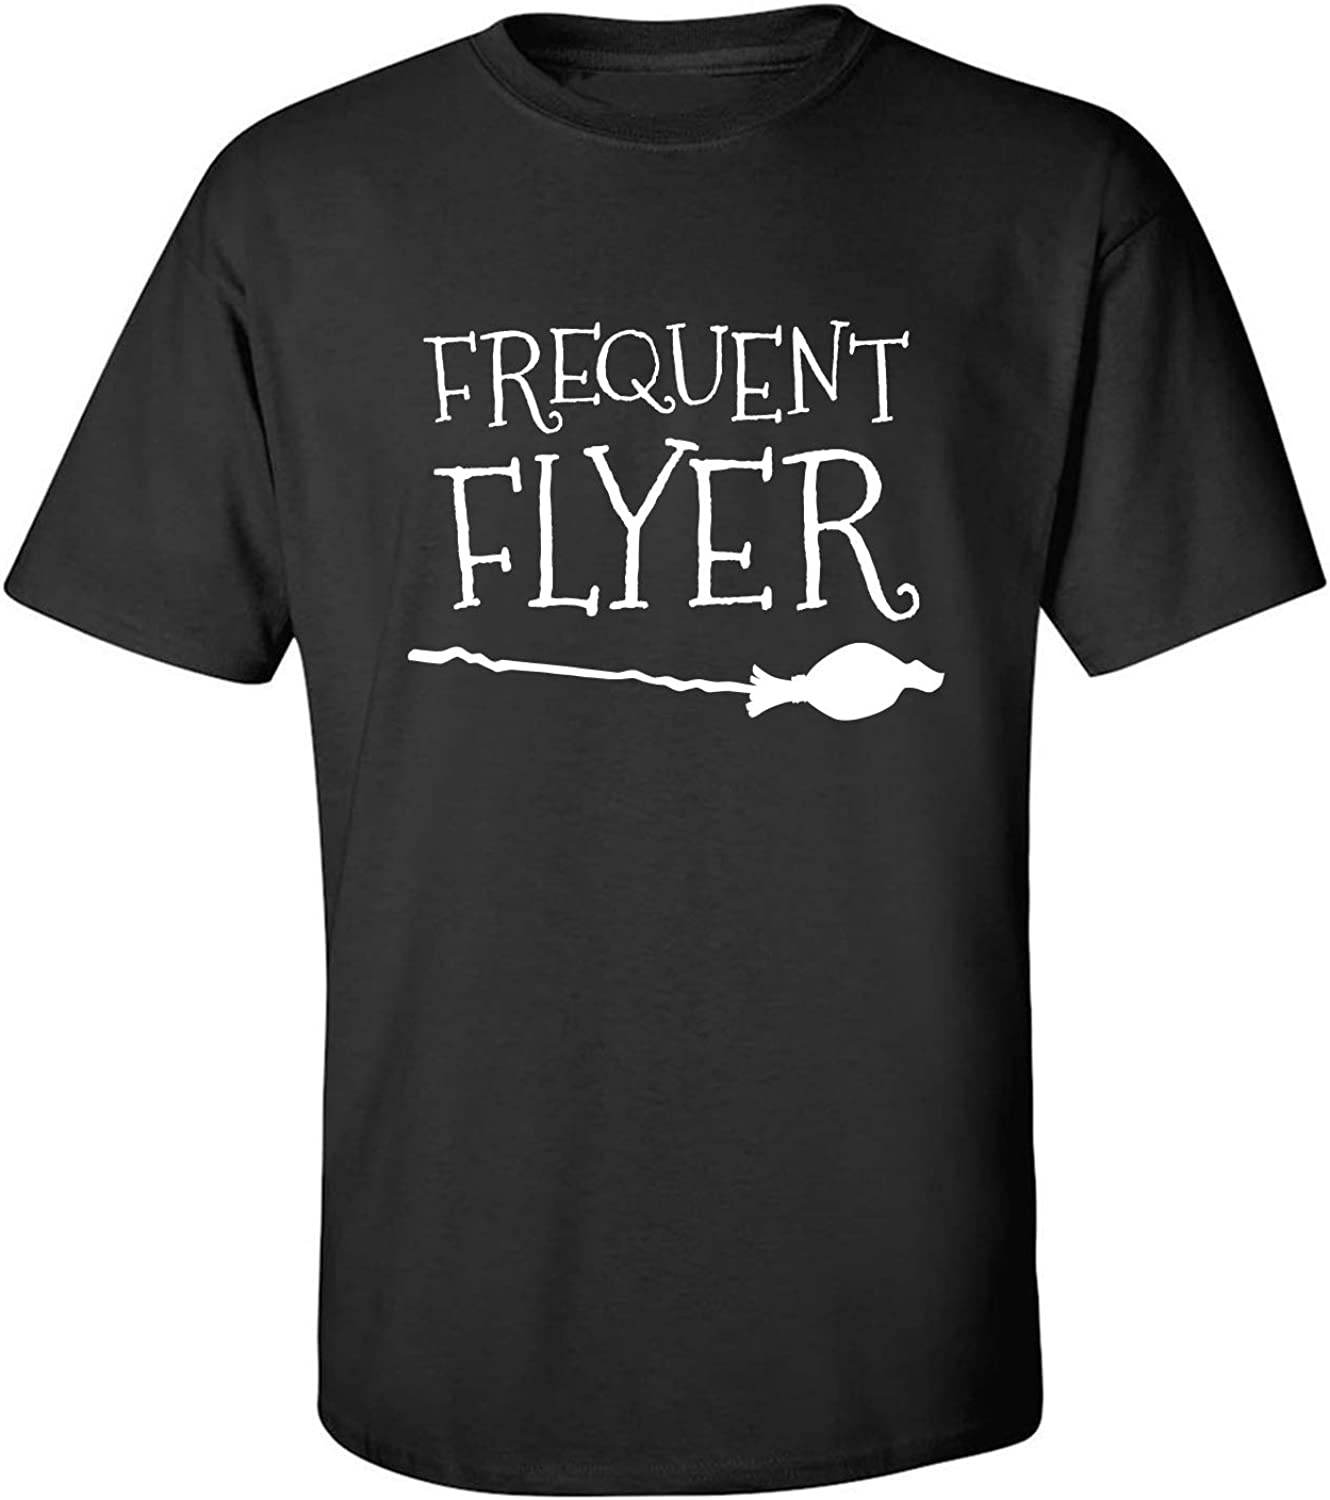 Frequent Flyer Adult T-Shirt in Black - XXXX-Large